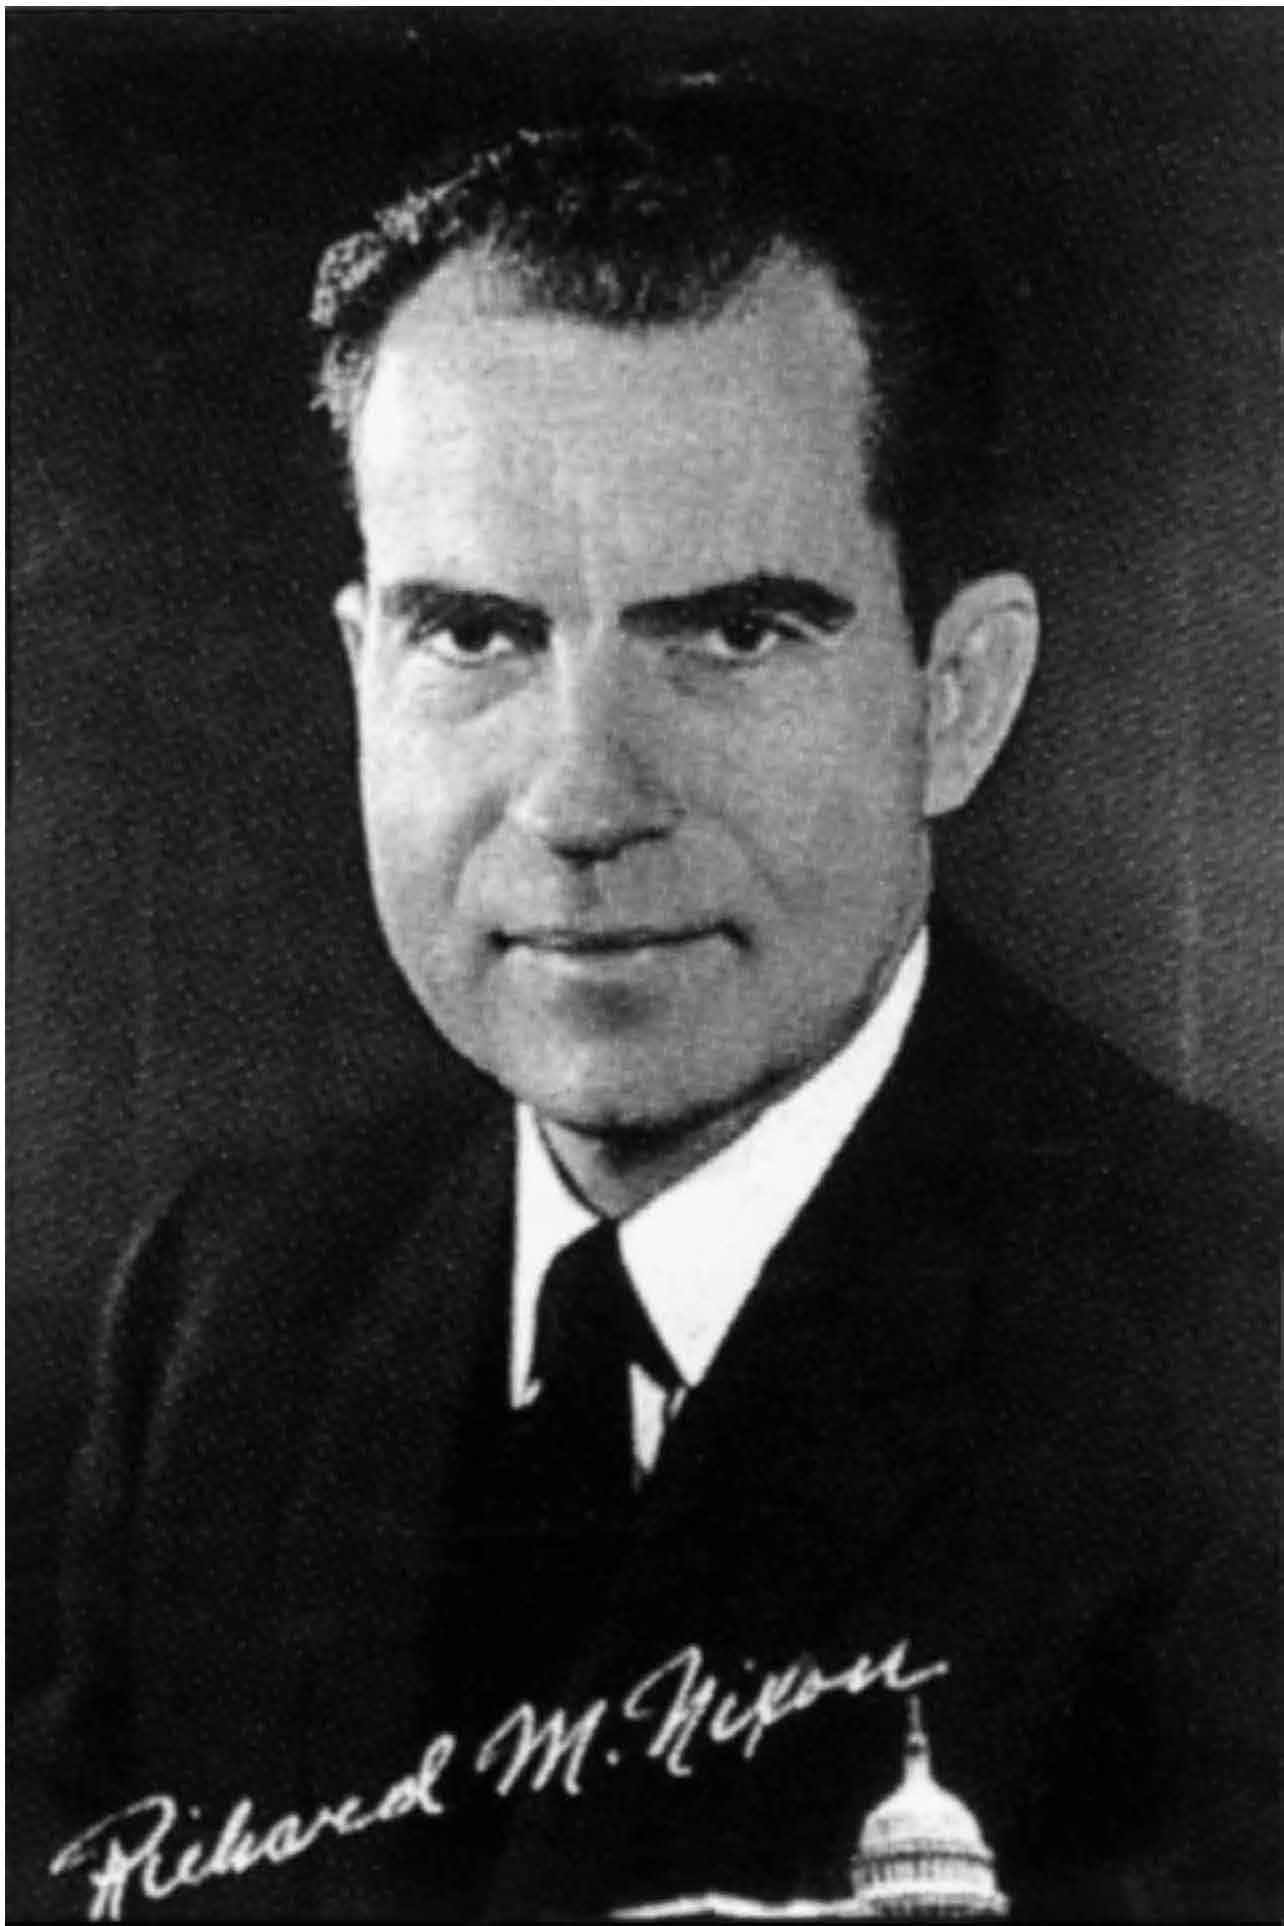 portrait of Nixon and link to PDF copy of ad